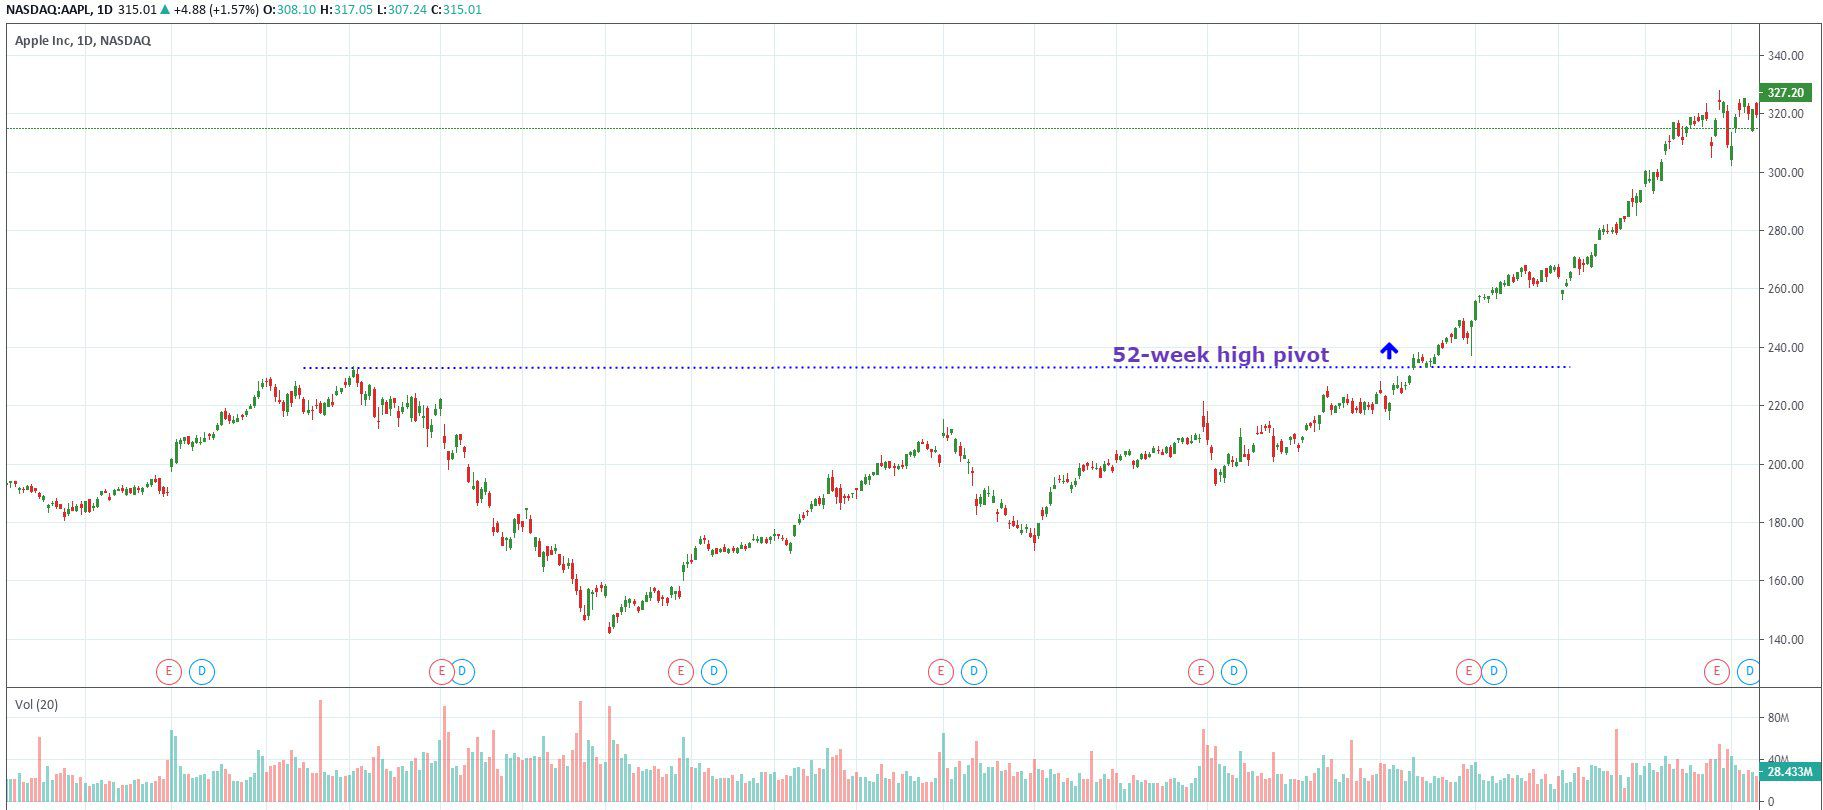 APPL moving through a 52-week high on a chart, acting as a pivot